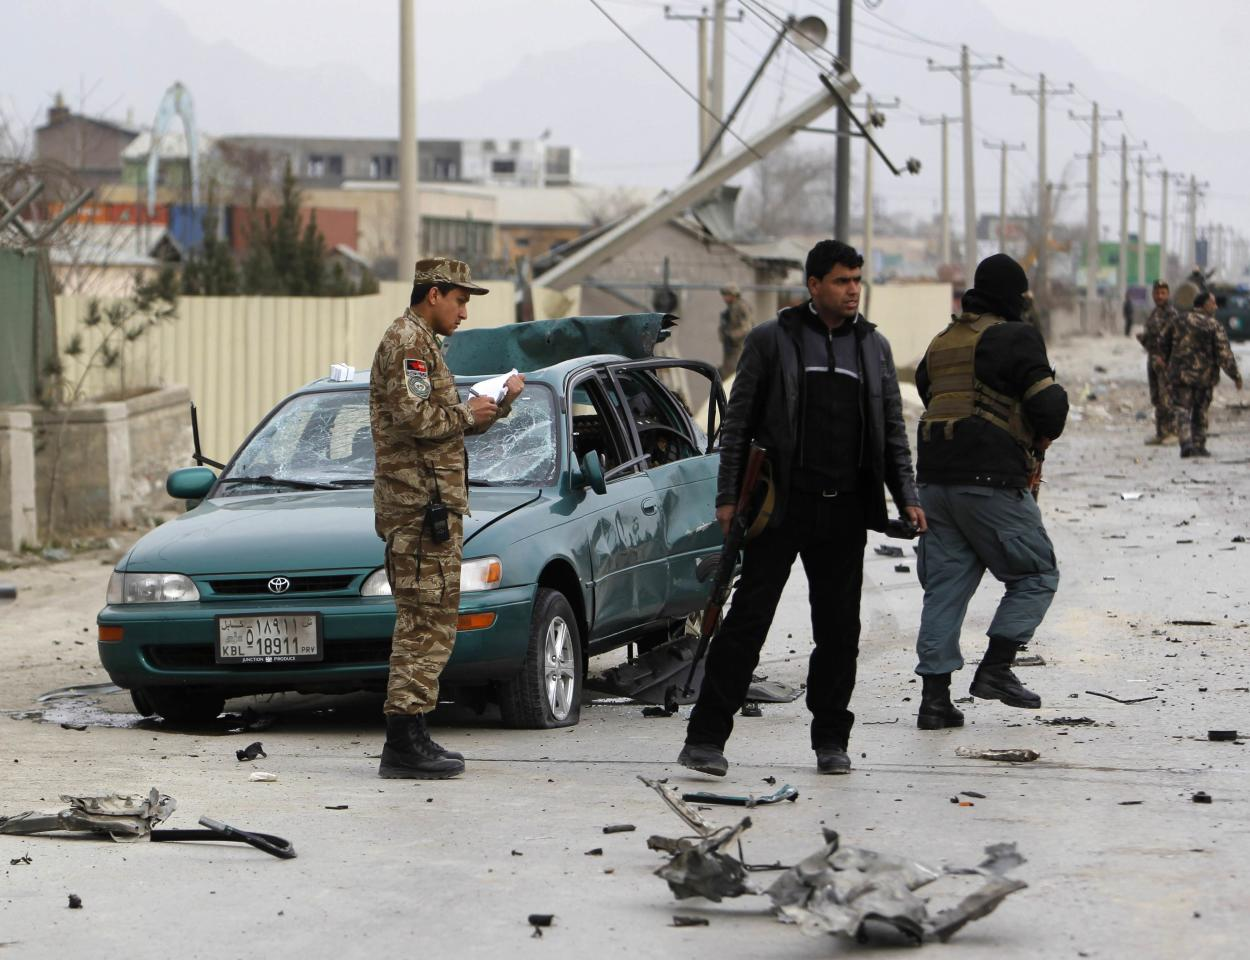 Afghan security personnel inspect a civilian's car at the site of a bomb attack in Kabul December 27, 2013. A suspected suicide bomber attacked a foreign military convoy on the eastern outskirts of the Afghan capital, Kabul, on Friday, killing at least three foreign soldiers, police and the NATO-led International Security Assistance Force (ISAF) said. REUTERS/Omar Sobhani (AFGHANISTAN - Tags: CIVIL UNREST MILITARY CRIME LAW)